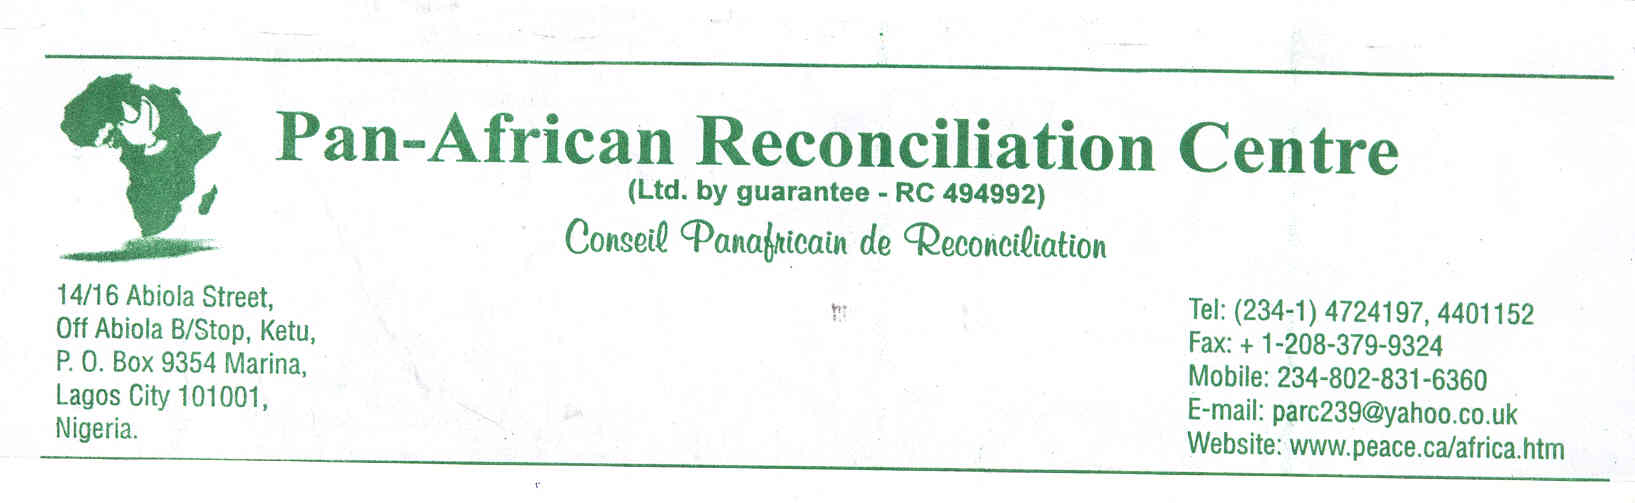 logo for Pan-African Reconciliation Council